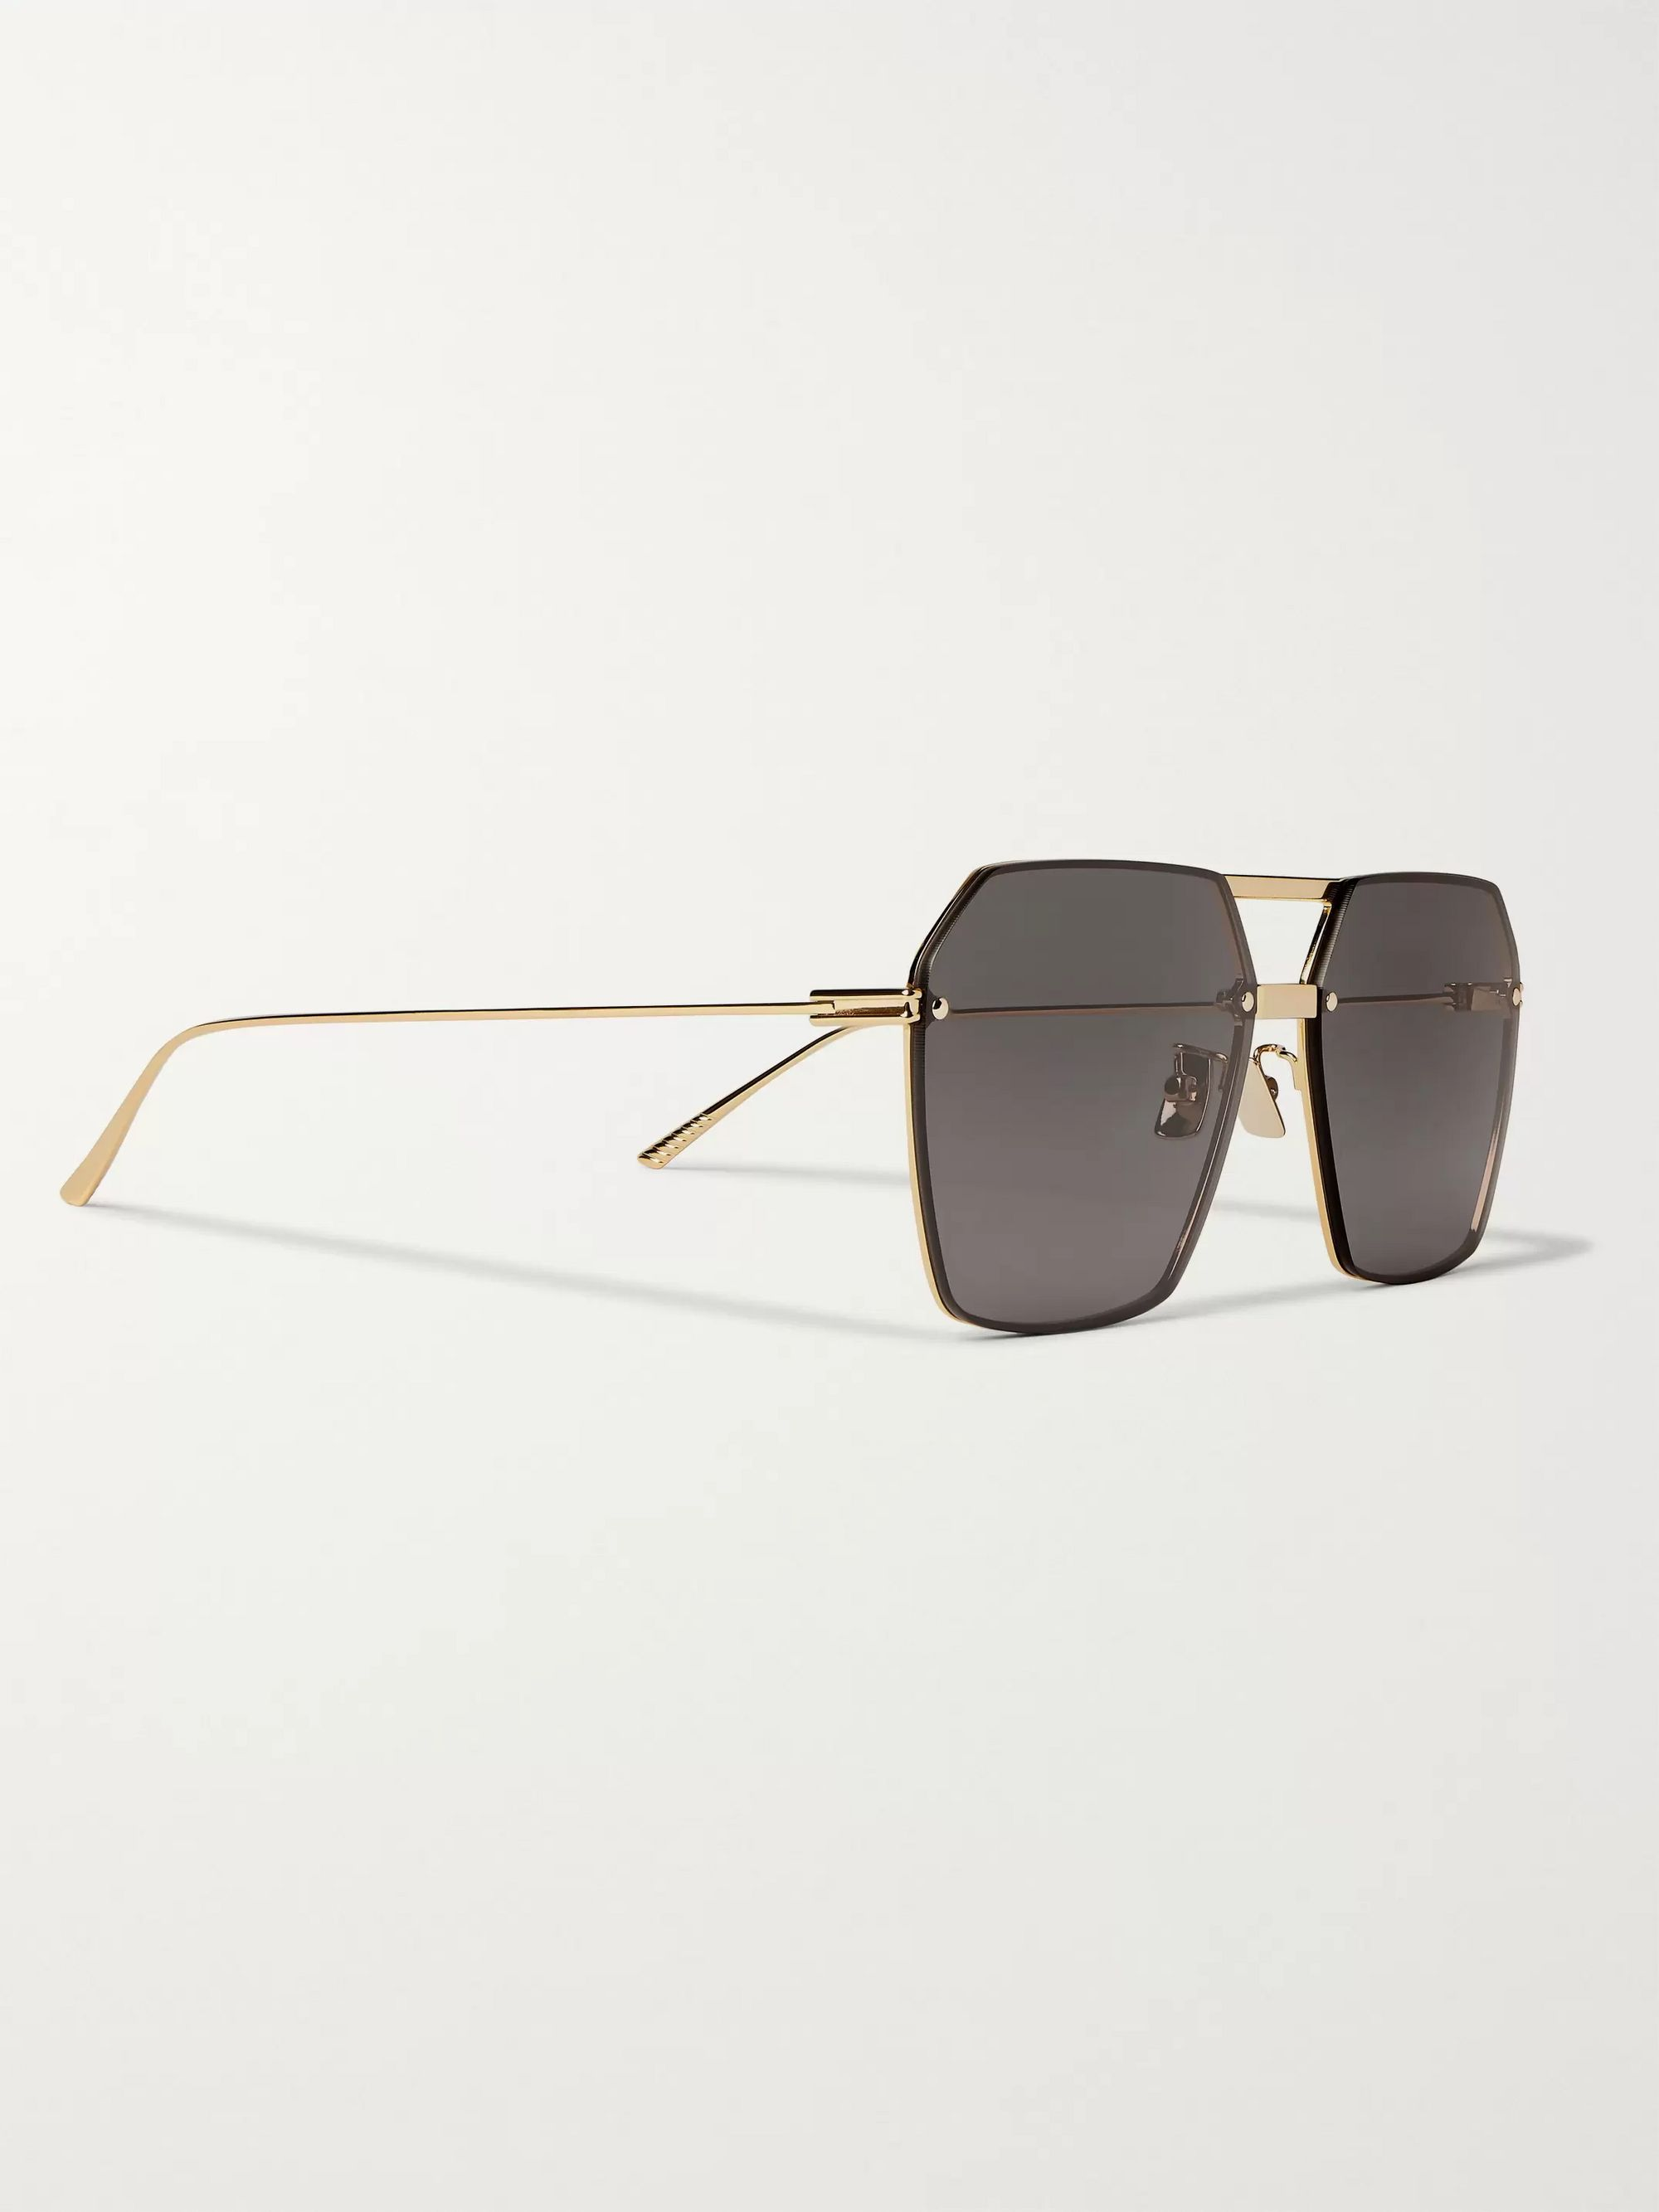 Bottega Veneta Aviator-Style Gold-Tone Sunglasses